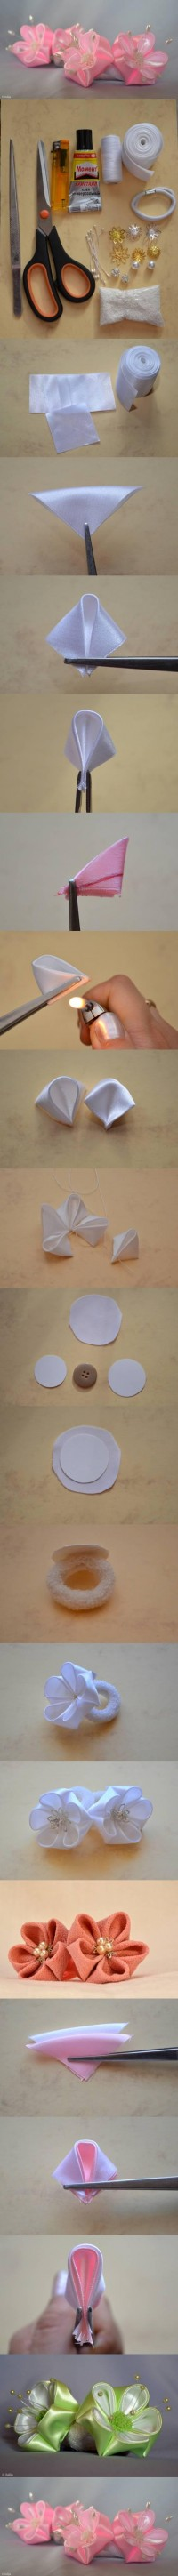 DIY Round Petals Ribbon Flower DIY Projects | UsefulDIY.com